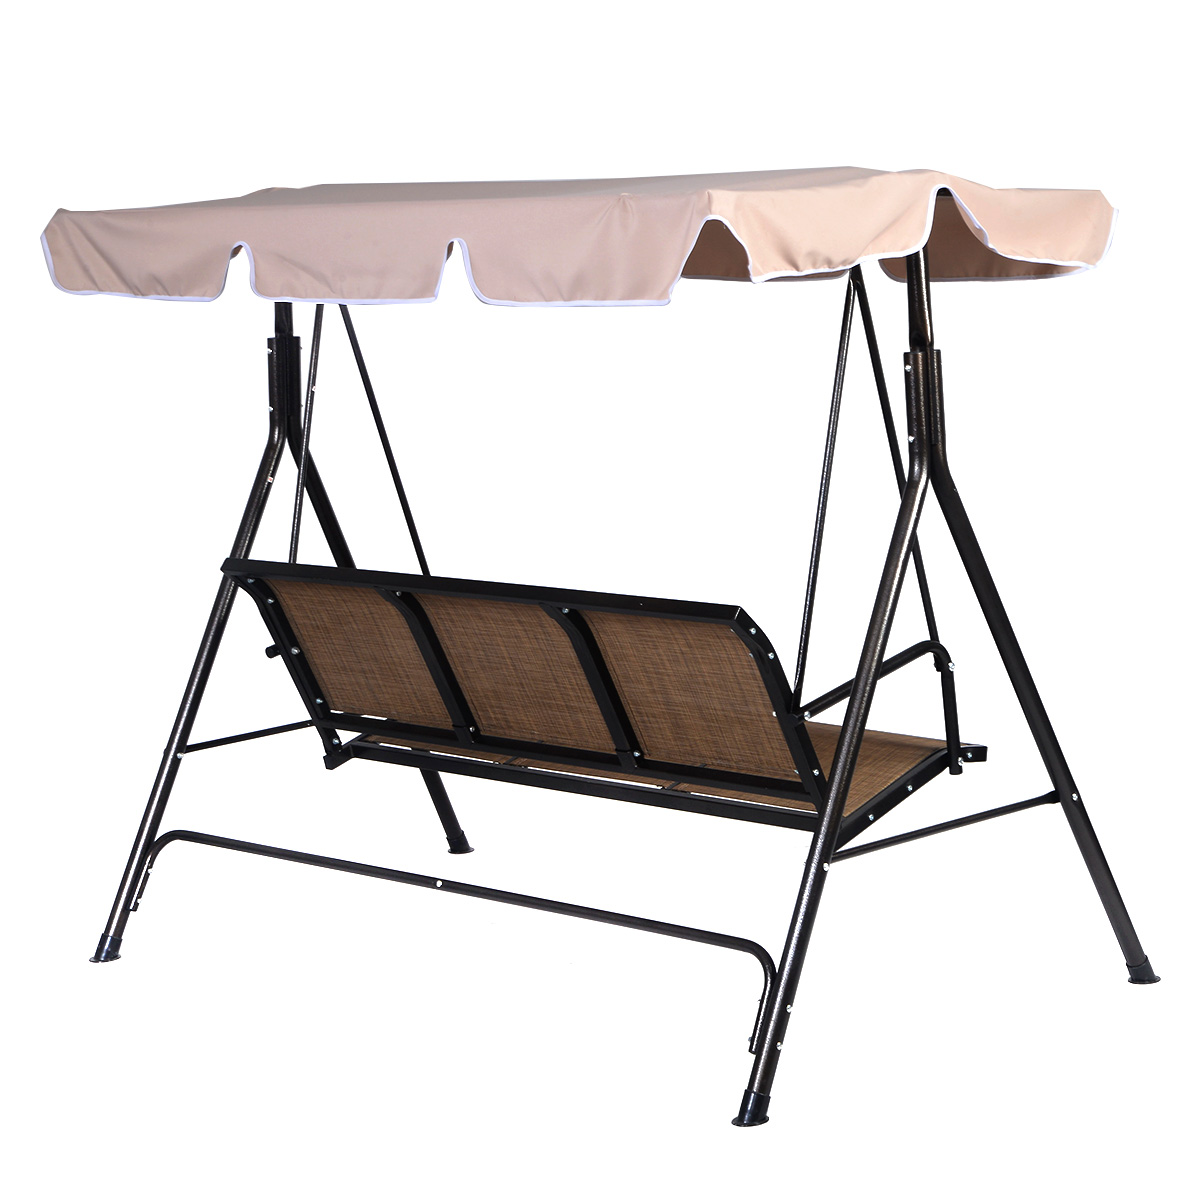 Costway 3 Person Outdoor Patio Swing Canopy Awning Yard Furniture Hammock  Steel Beige   Walmart.com